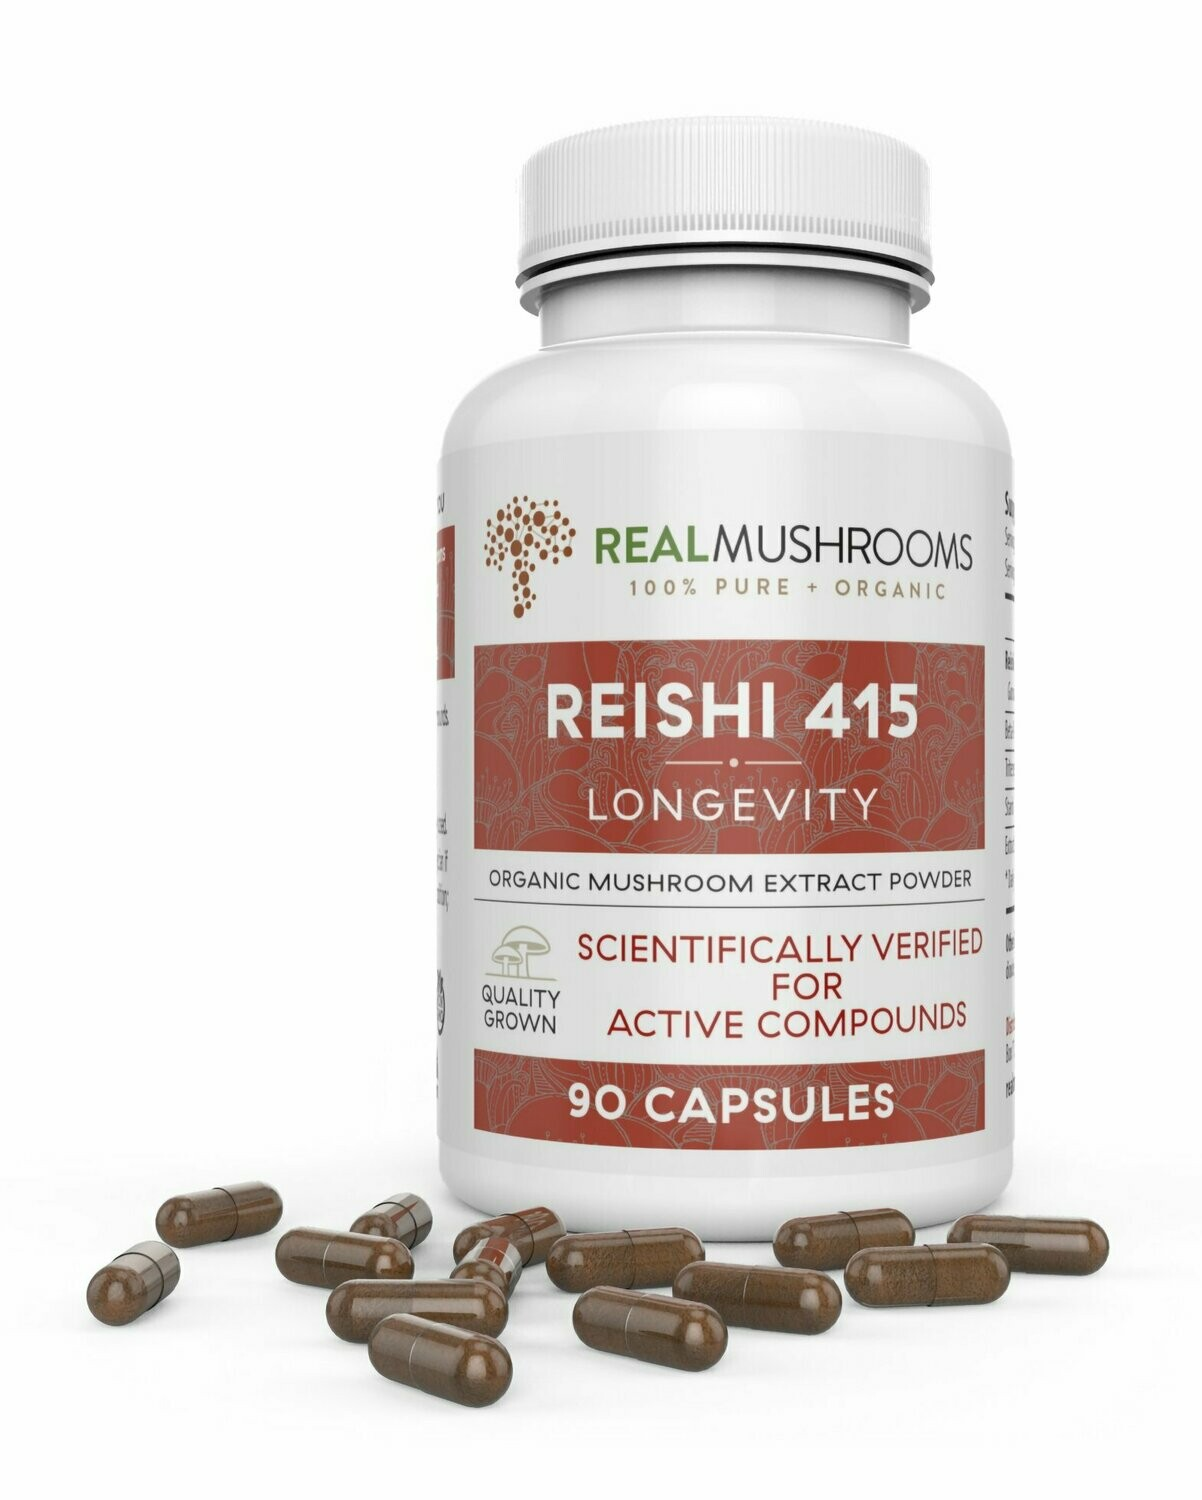 Reishi 415 Longevity 90 Capsules  Real Mushrooms